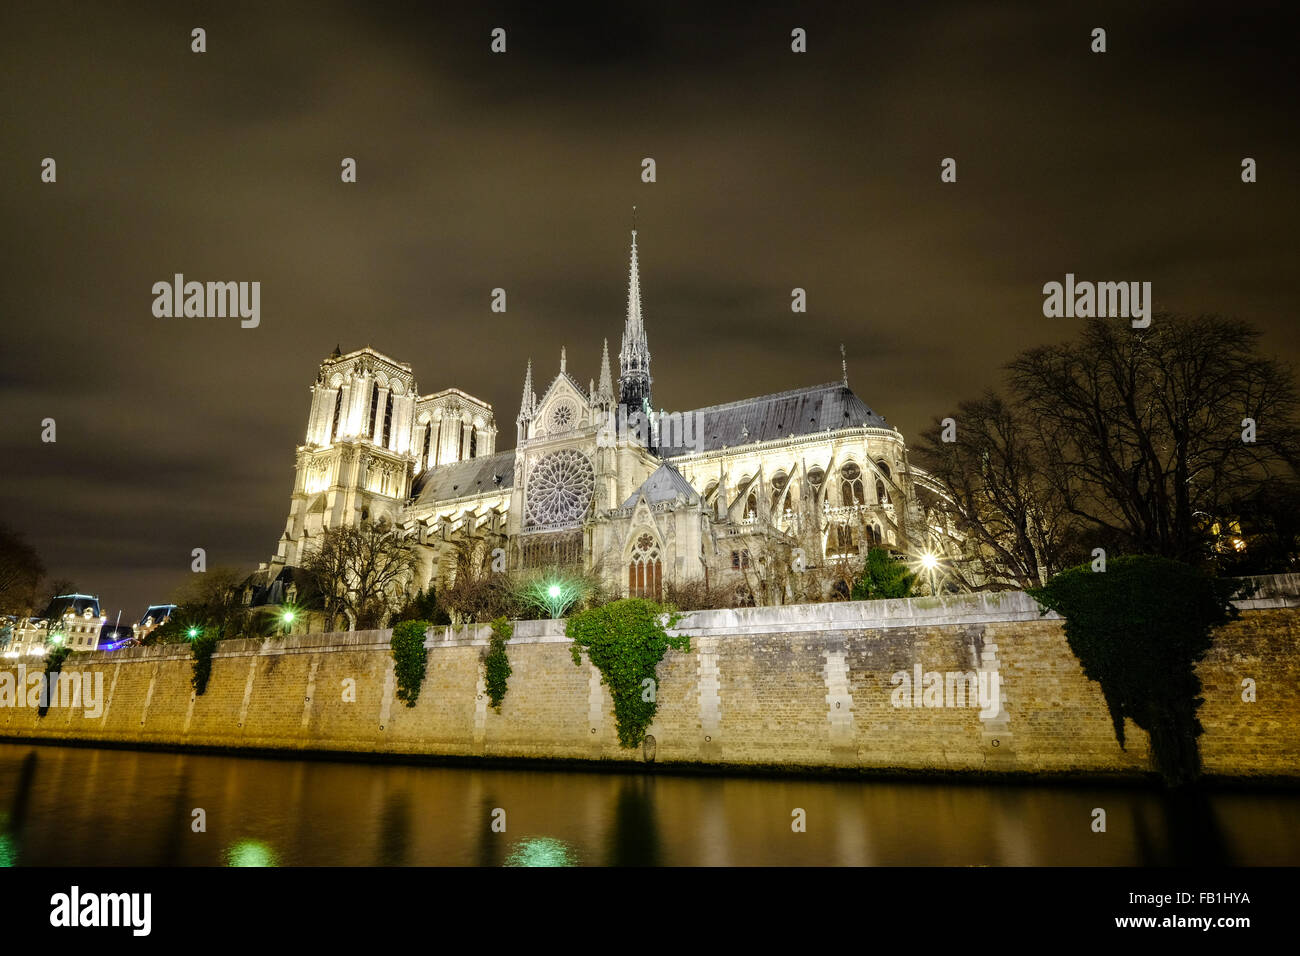 A beautiful night scene of Cathedral Notre Dame along the Seine in Paris France. - Stock Image